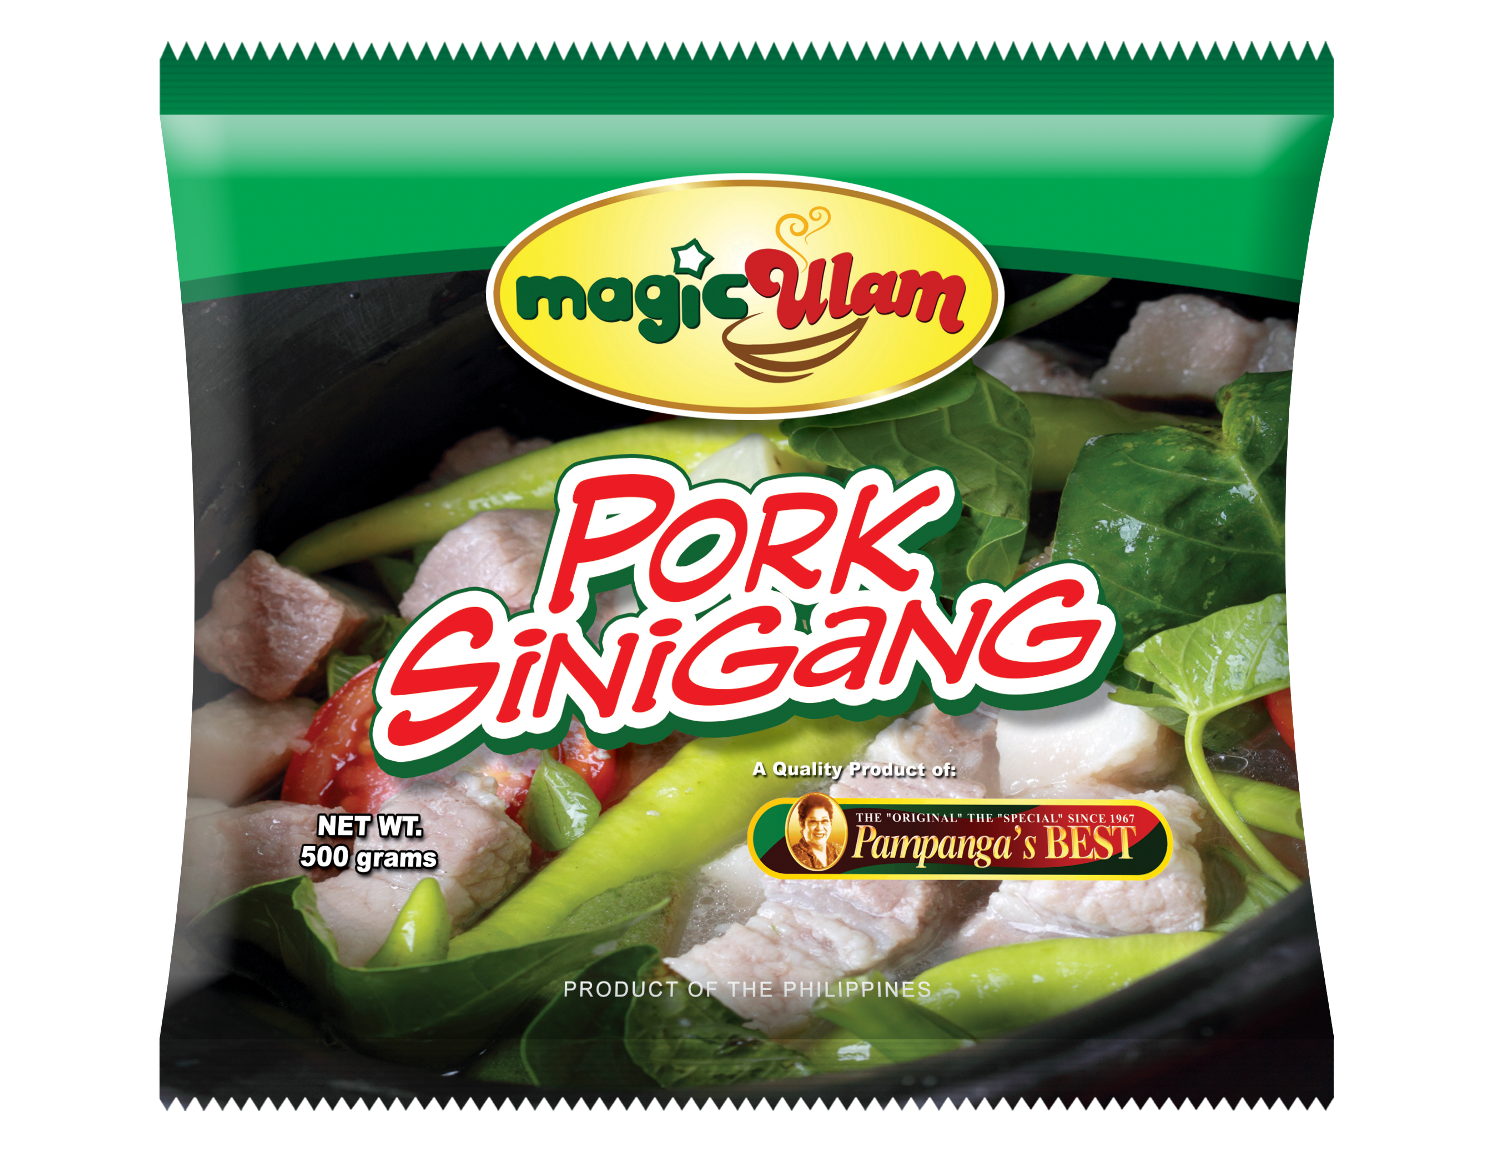 Magic Ulam Pork Sinigang 500g